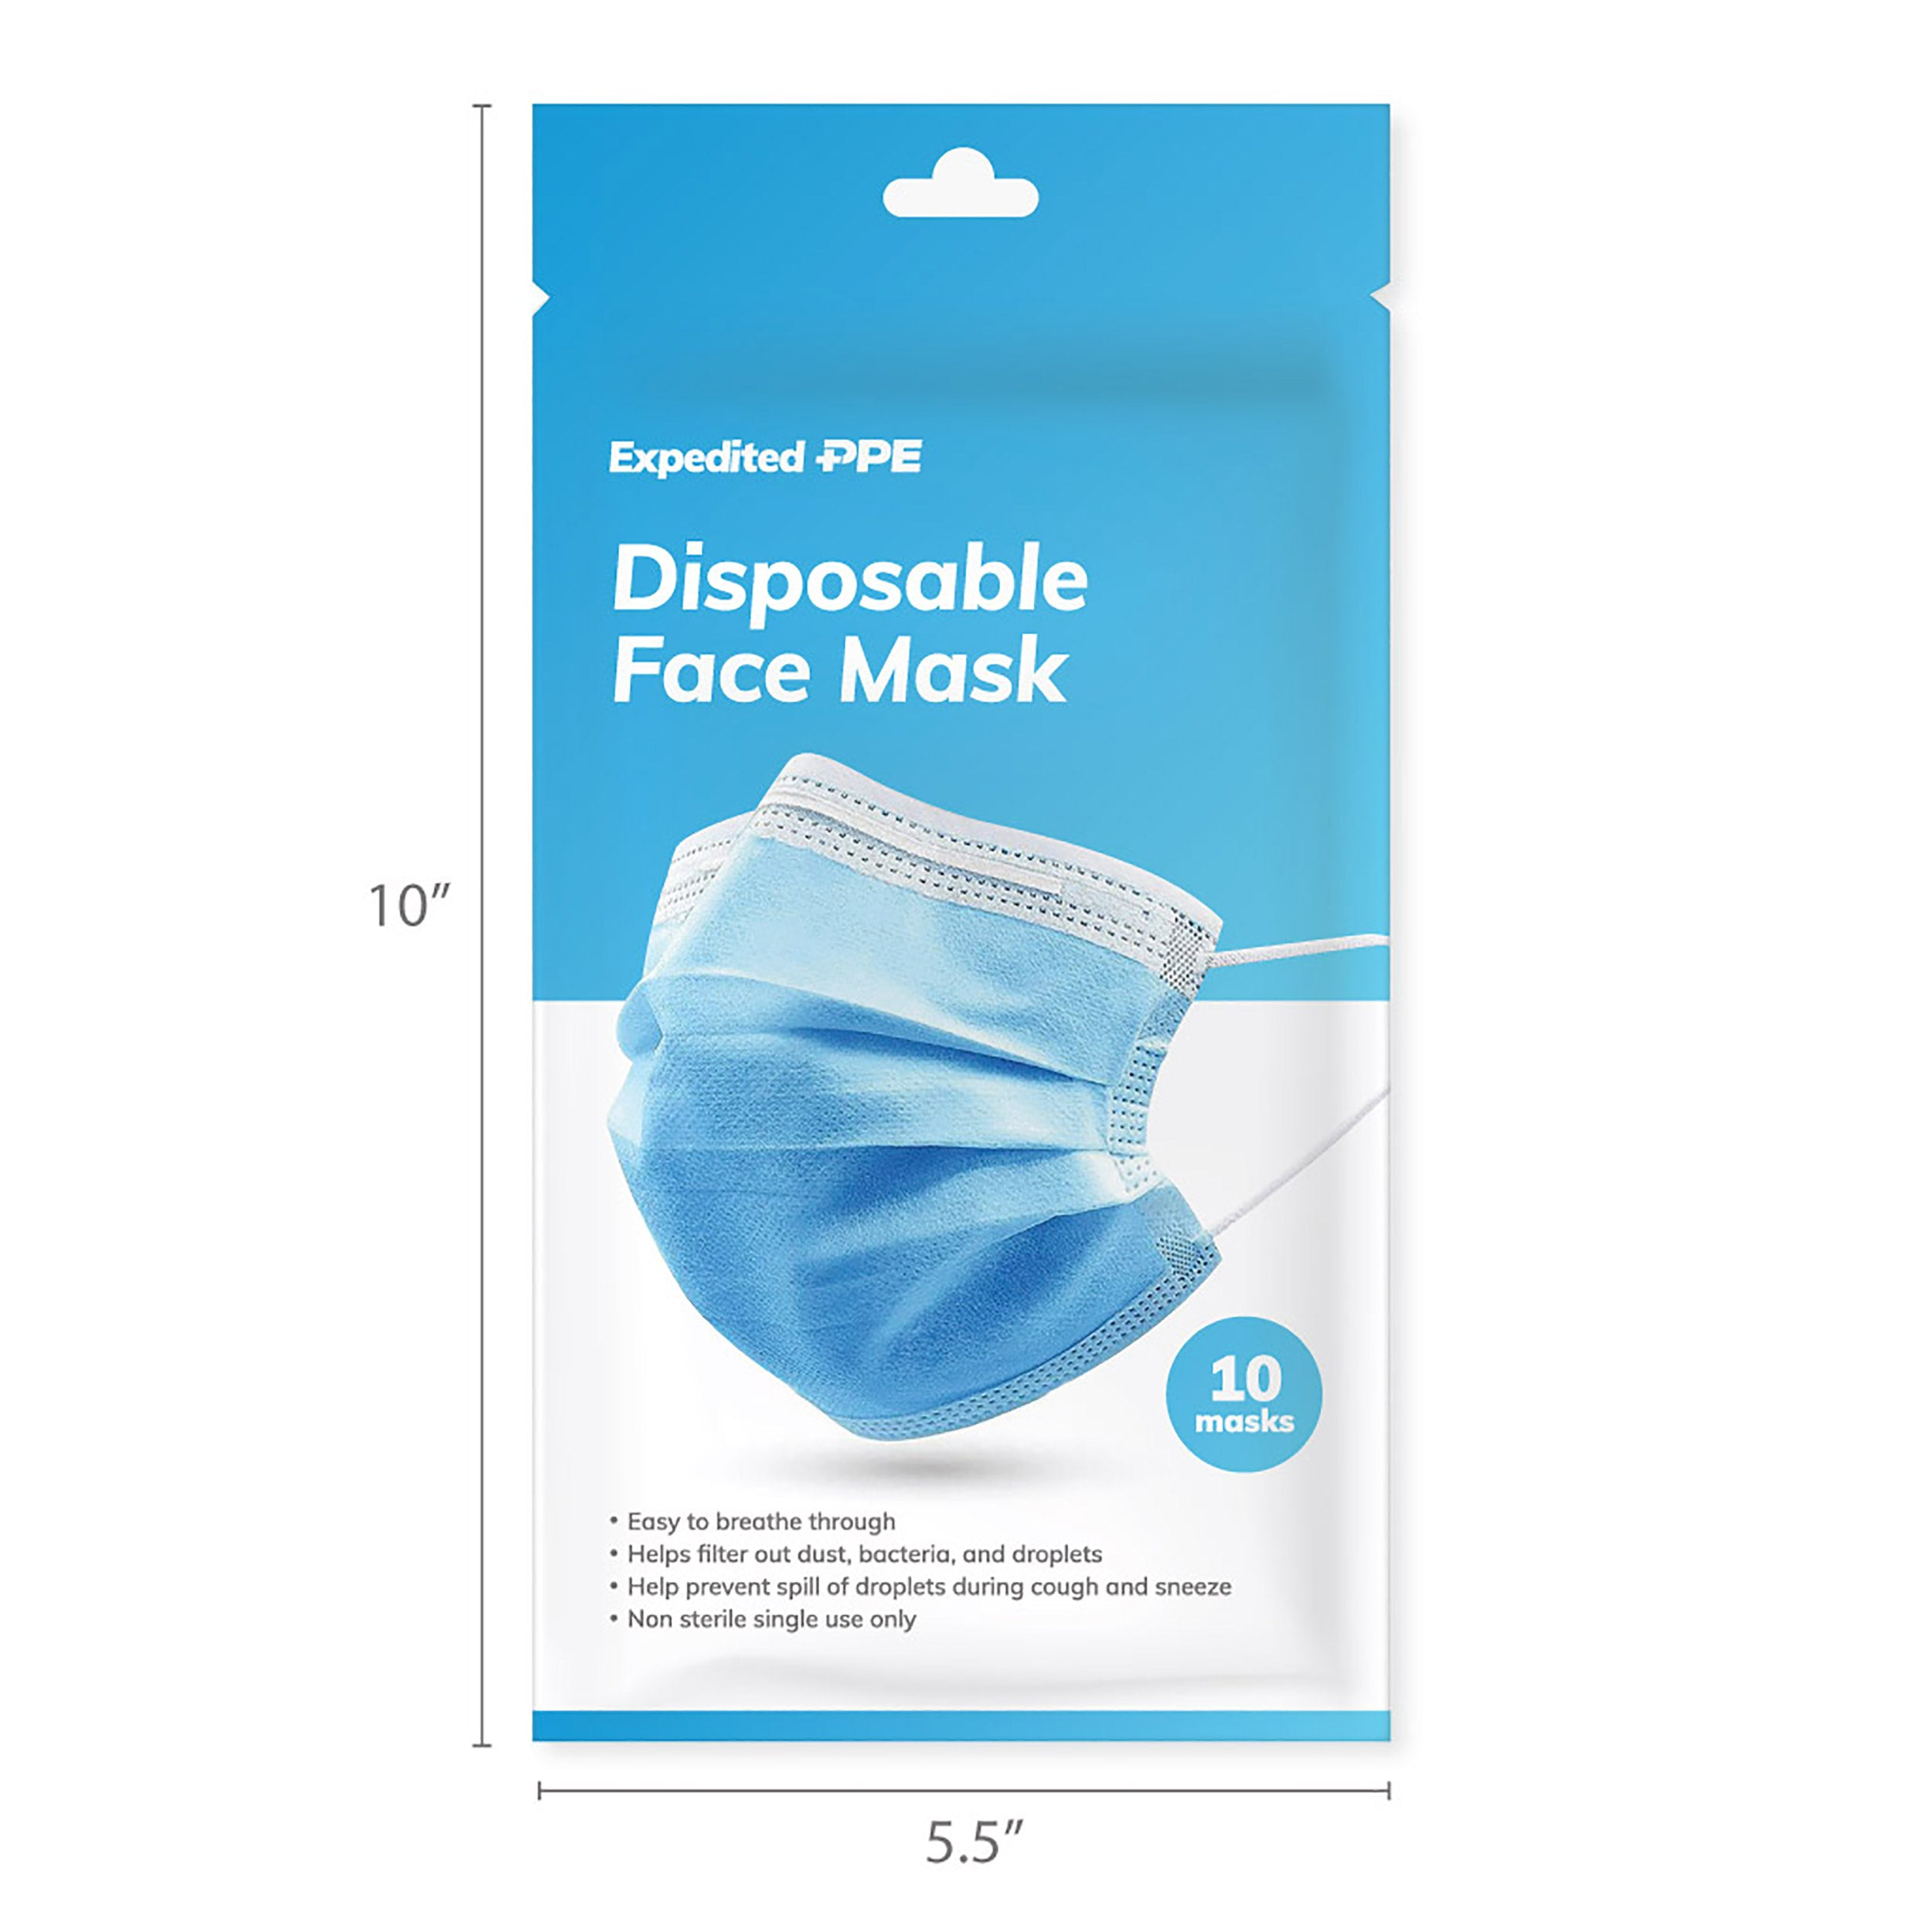 100-Pack Disposable Face Mask with Ear Loop (10 cases of 10-Pack)